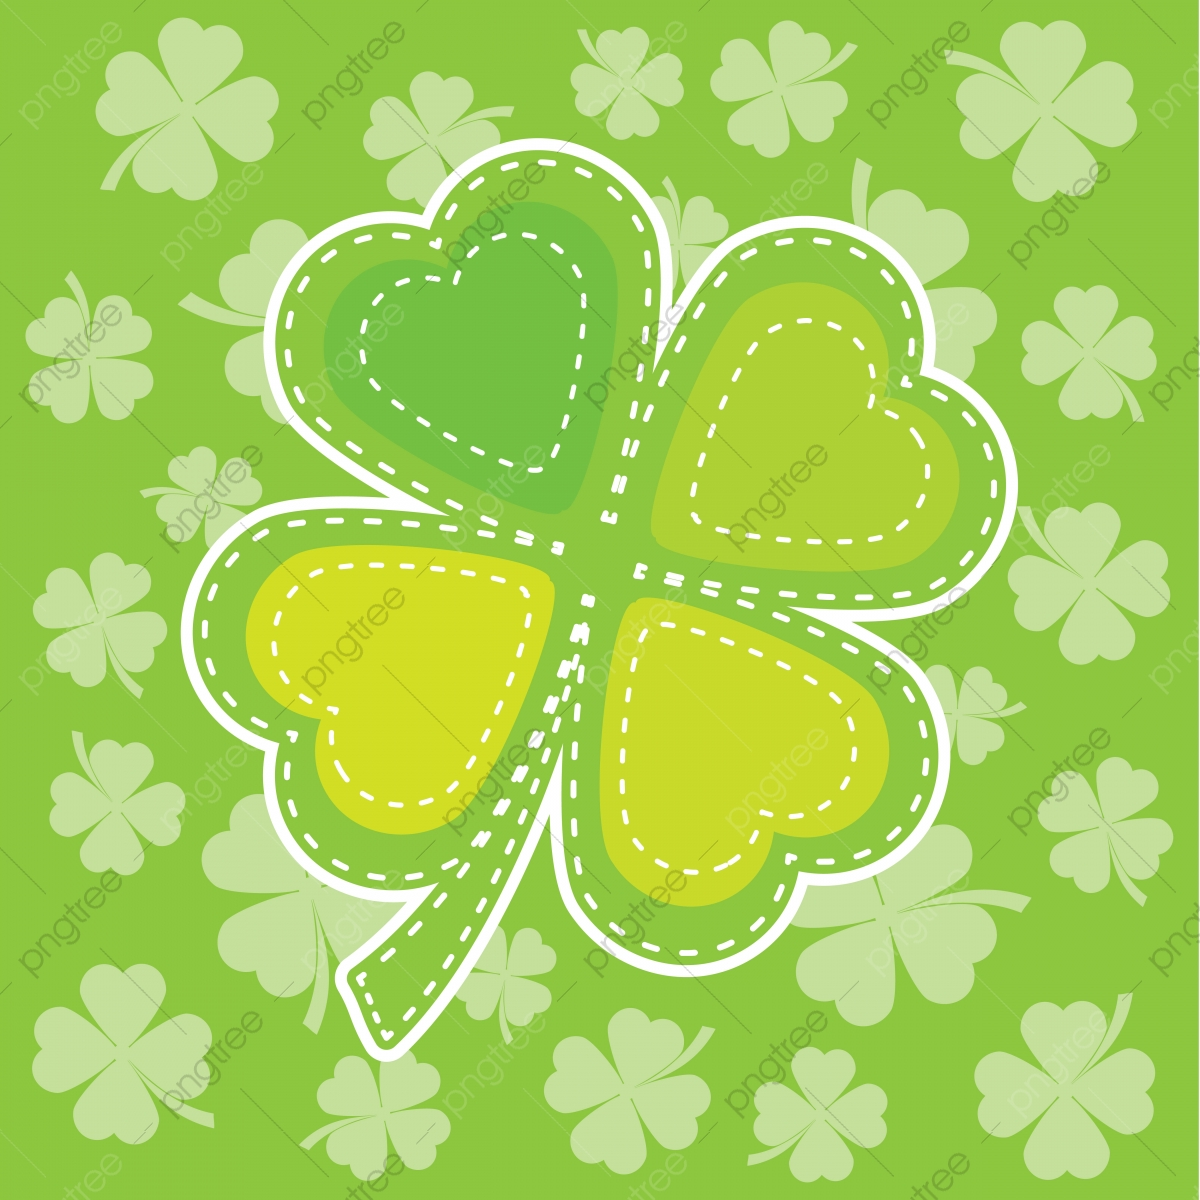 Colorful Shamrock Leaves For St Patricks Day Greeting Card